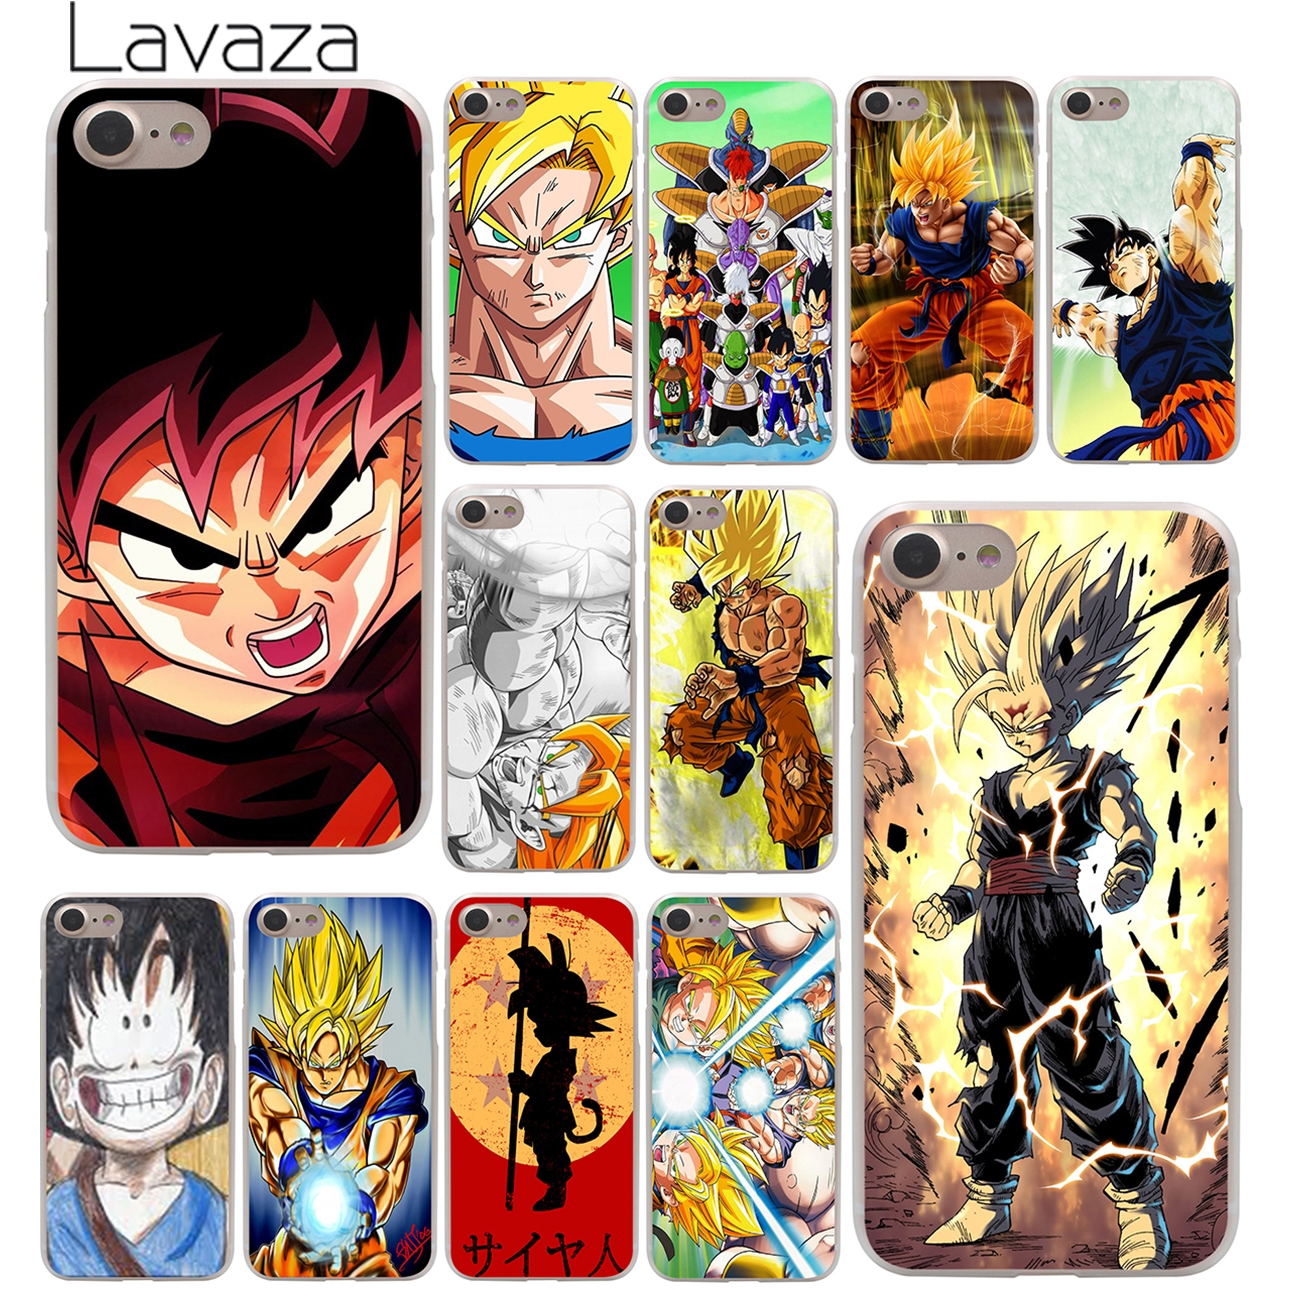 Dragon Ball DragonBall z goku Hard Case Transparent for iPhone 7 7 Plus 6 6s Plus 5 5S SE 5C 4 4S